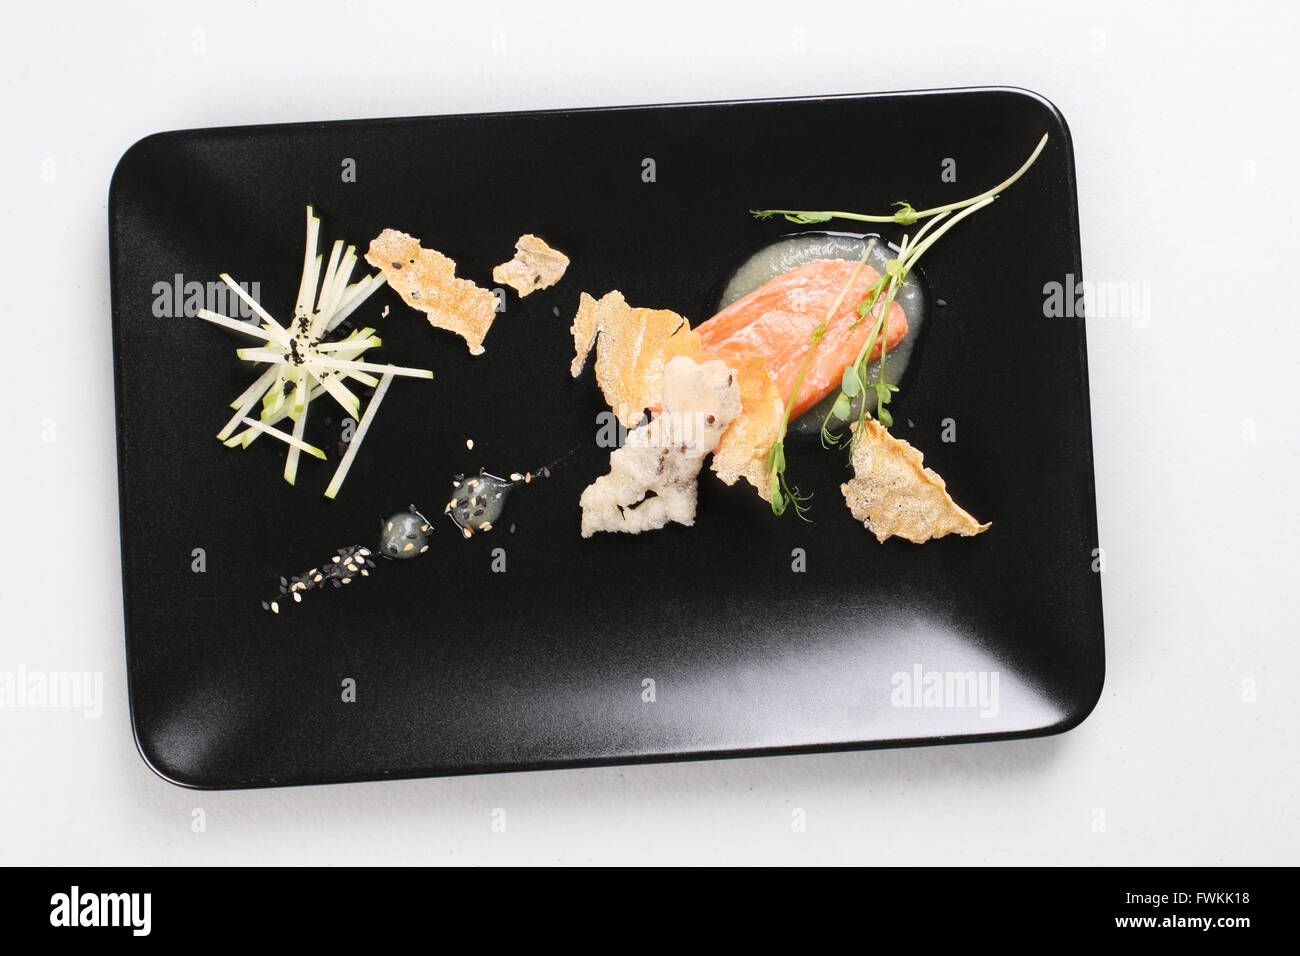 Smoked salmon and sauce cooked by molecular gastronomy technic - Stock Image